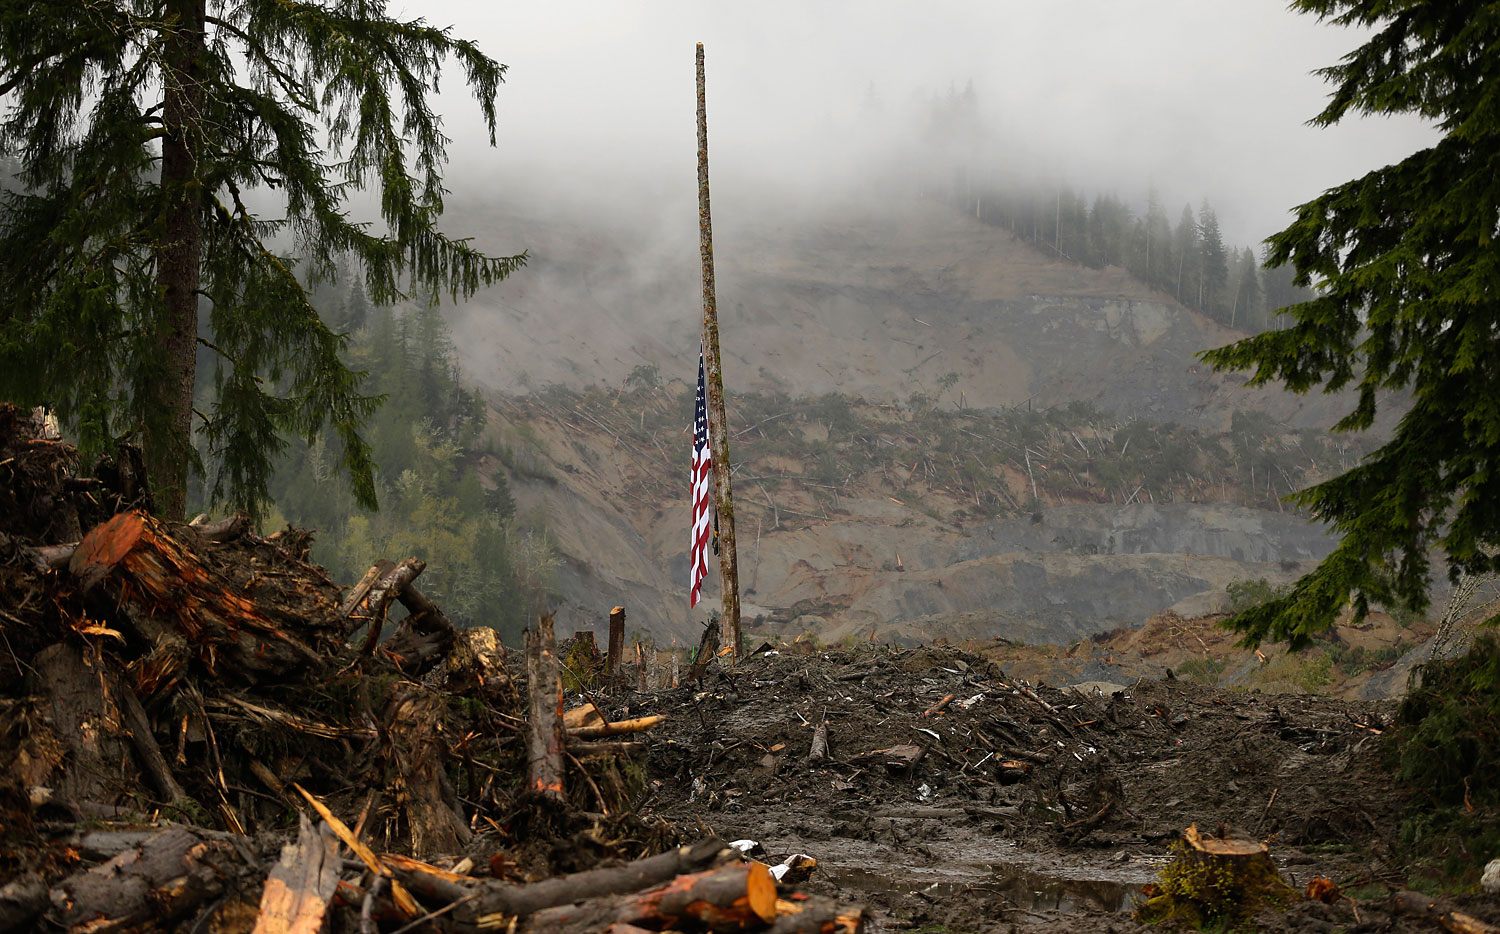 A flag rests at half staff on a cedar pole, Wednesday, April 16, 2014, with the face of the massive deadly mudslide that hit the community of Oso, Wash. on March 22, 2014 behind it.